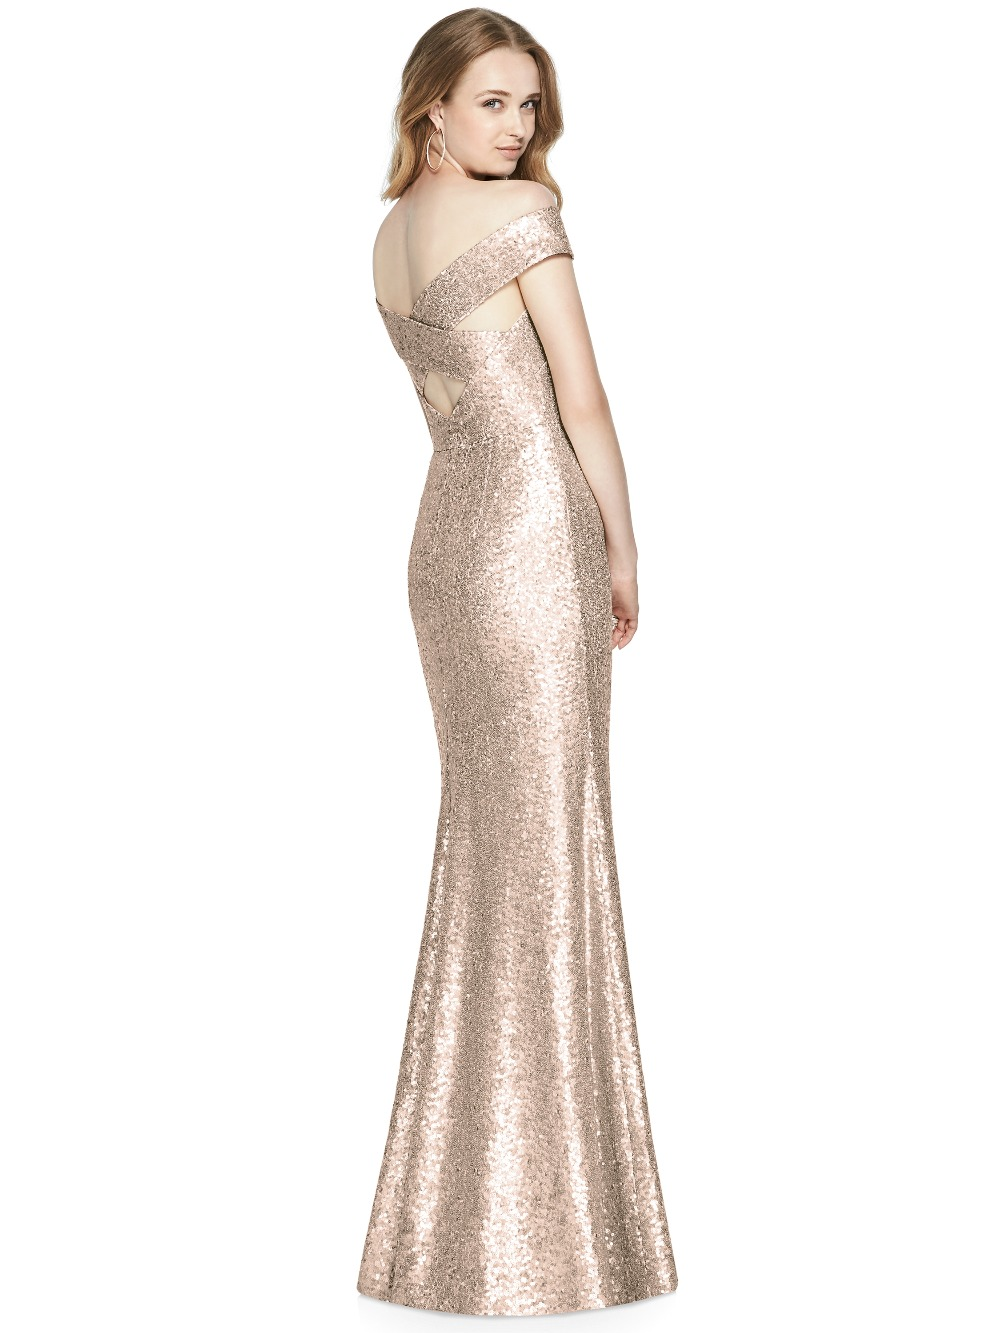 Trending - Sequin Bridesmaid Dresses By Dessy